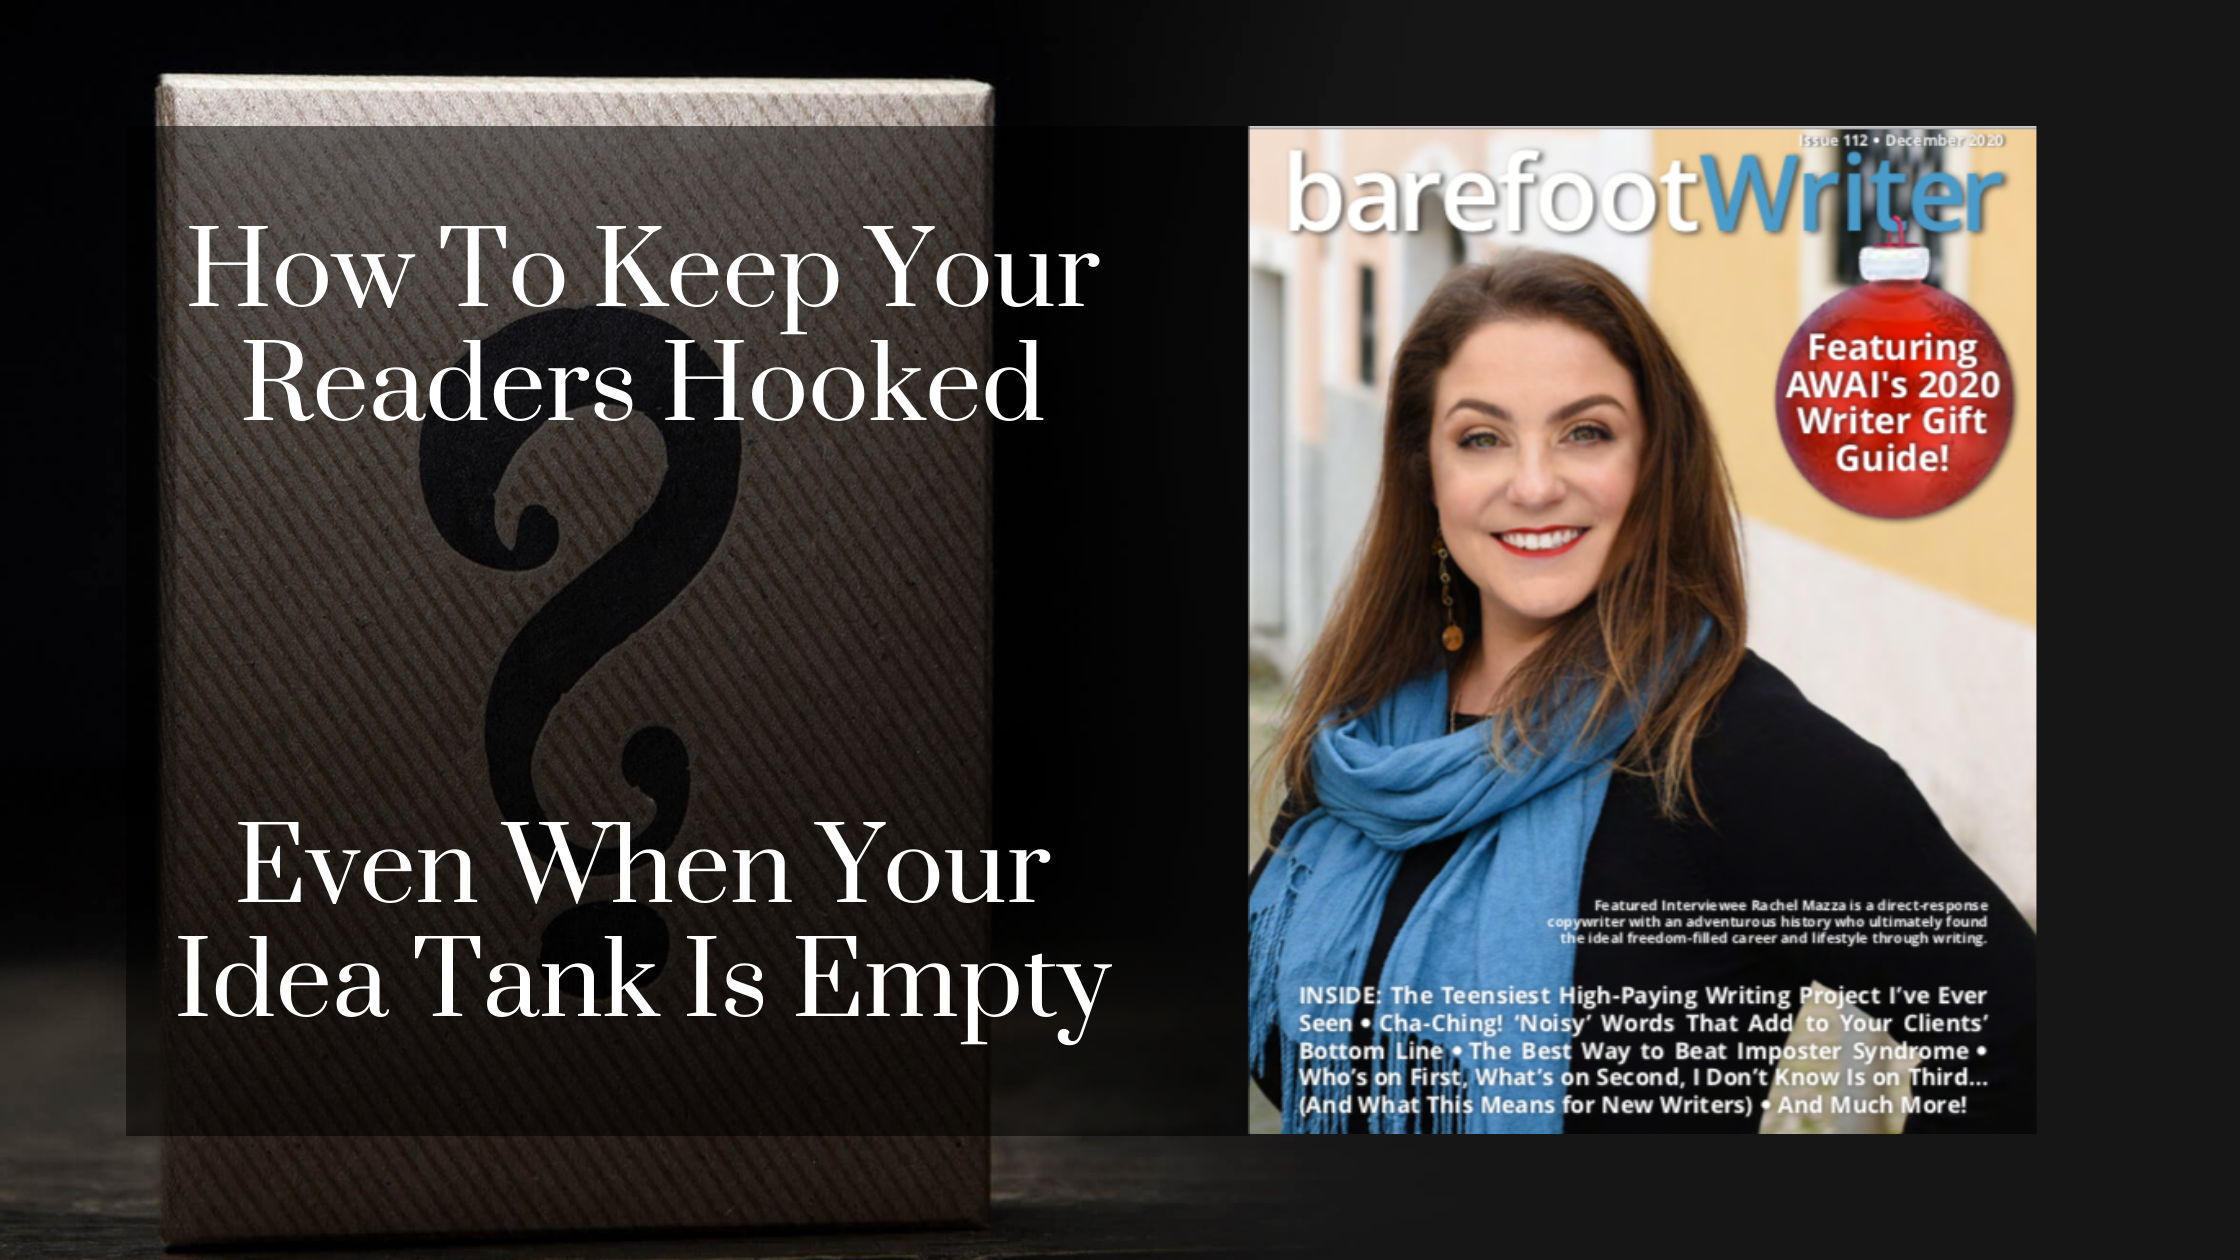 How To Keep Your Readers Hooked (Even When Your Idea Tank Is Empty)